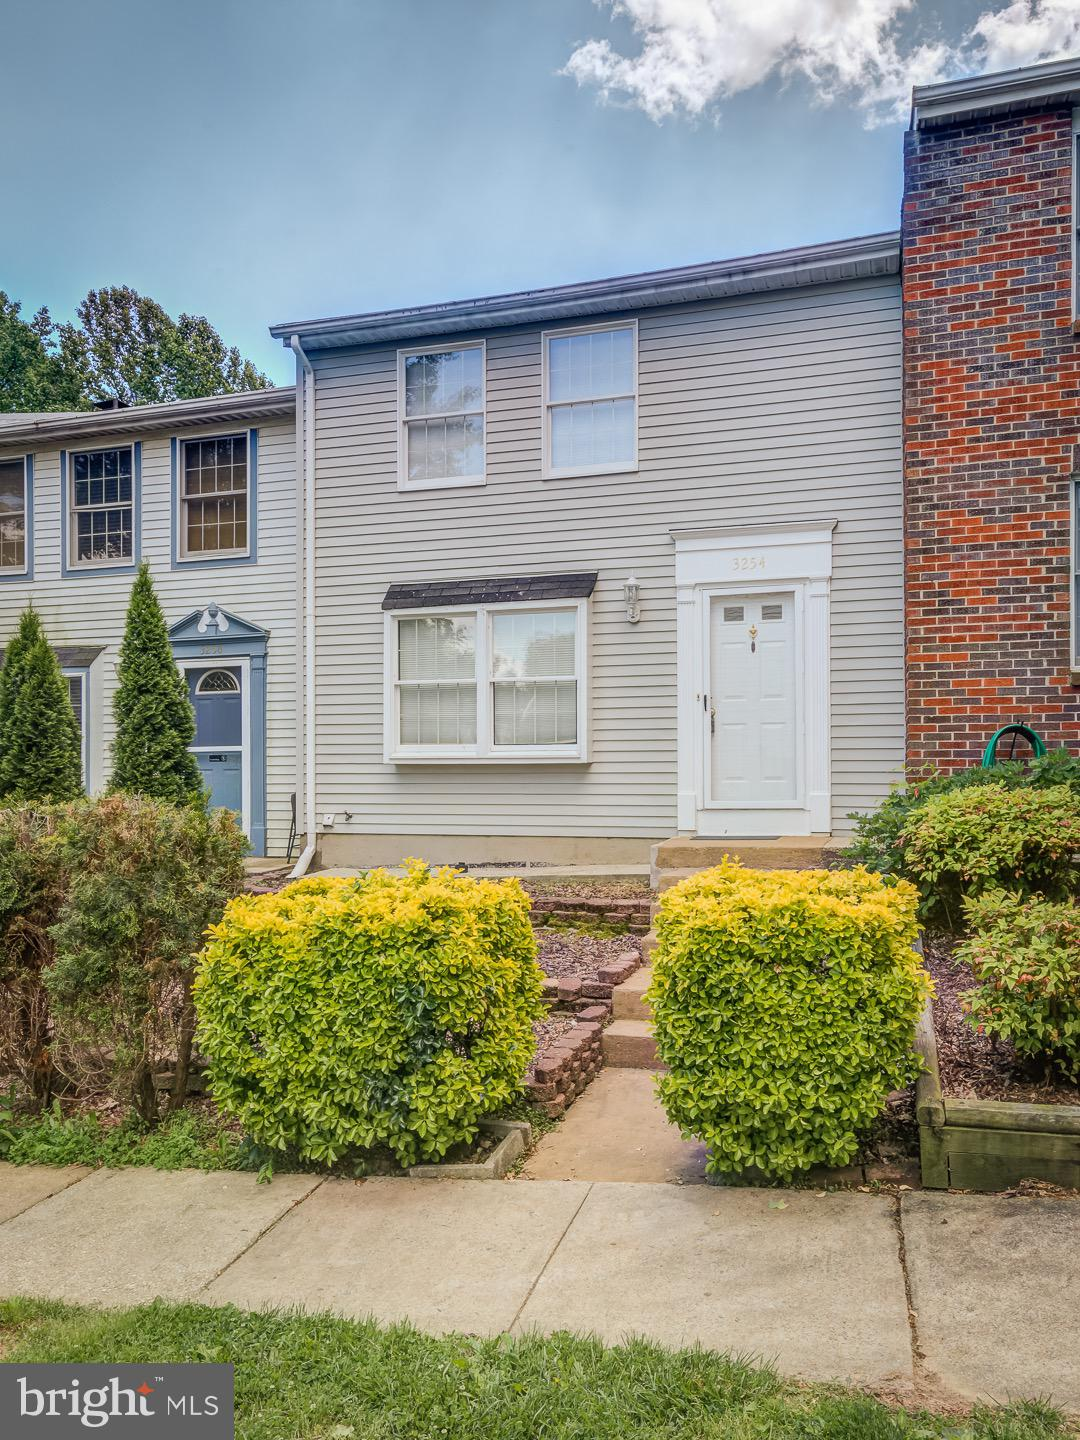 Completely remodeled on 2015! Hardwood floors, carpet. Kitchen w/stainless appliances, granite counters and cherry cabinets. Updated Baths, beautiful ceramic and tiles, Updated doors, fixtures and lighting. Fully fenced backyard, backs to open common area with beautiful view. Great location, close to PW Pkwy,I95,shops,Mall & Restaurants